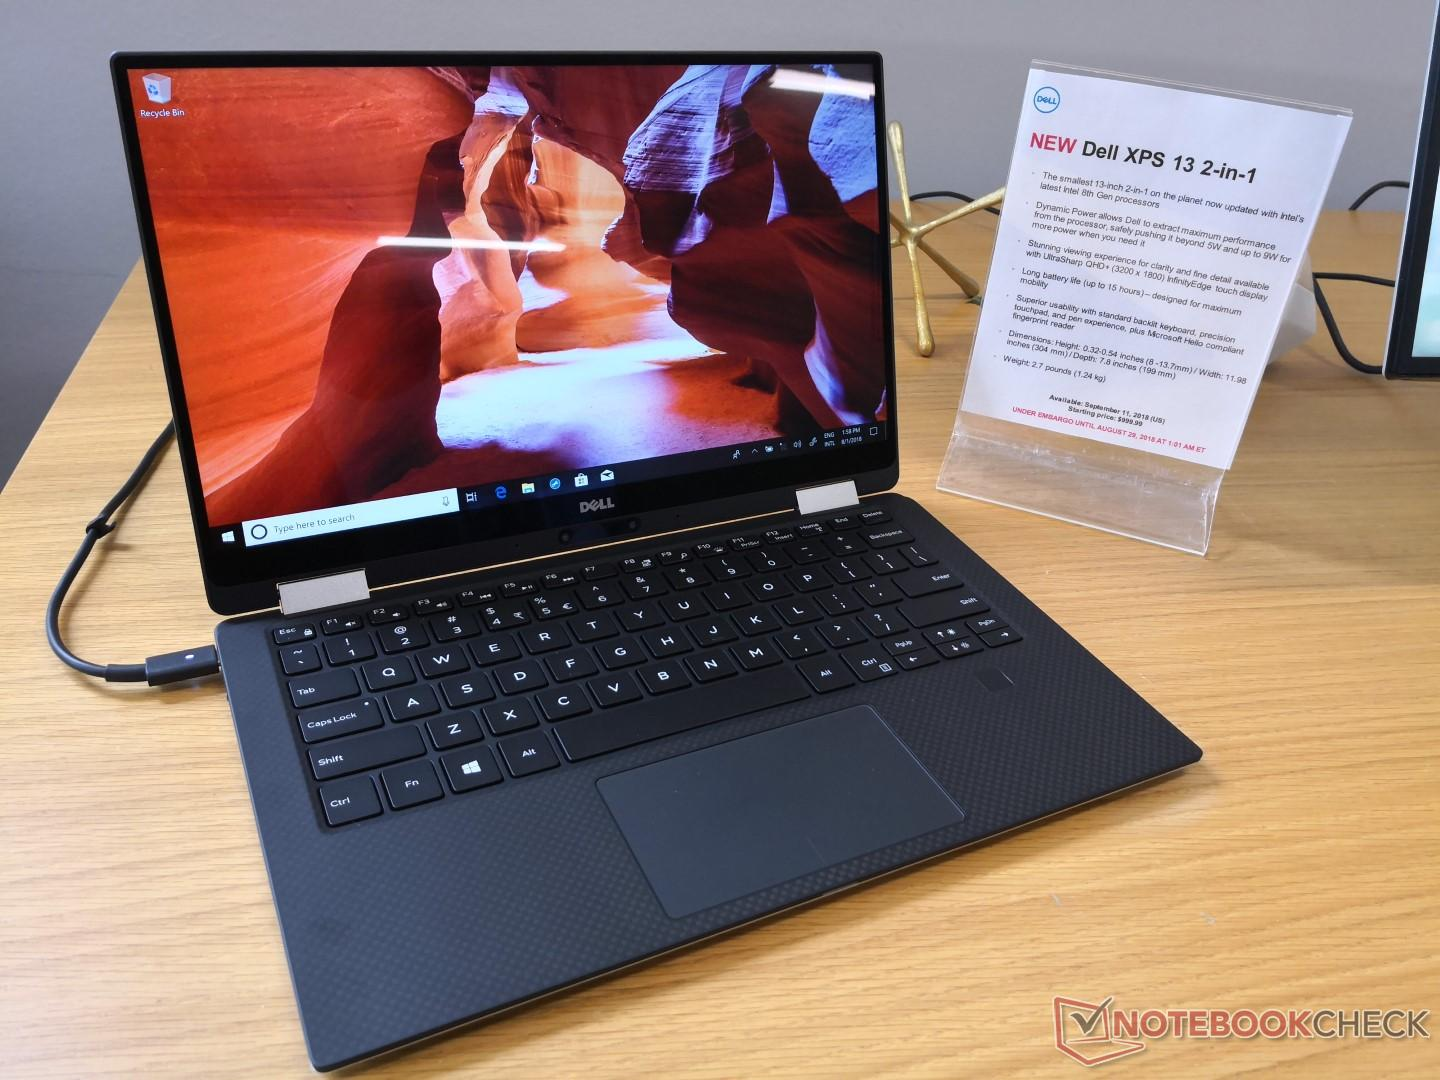 The XPS 13 2-in-1 is coming back with Intel Amber Lake SoCs